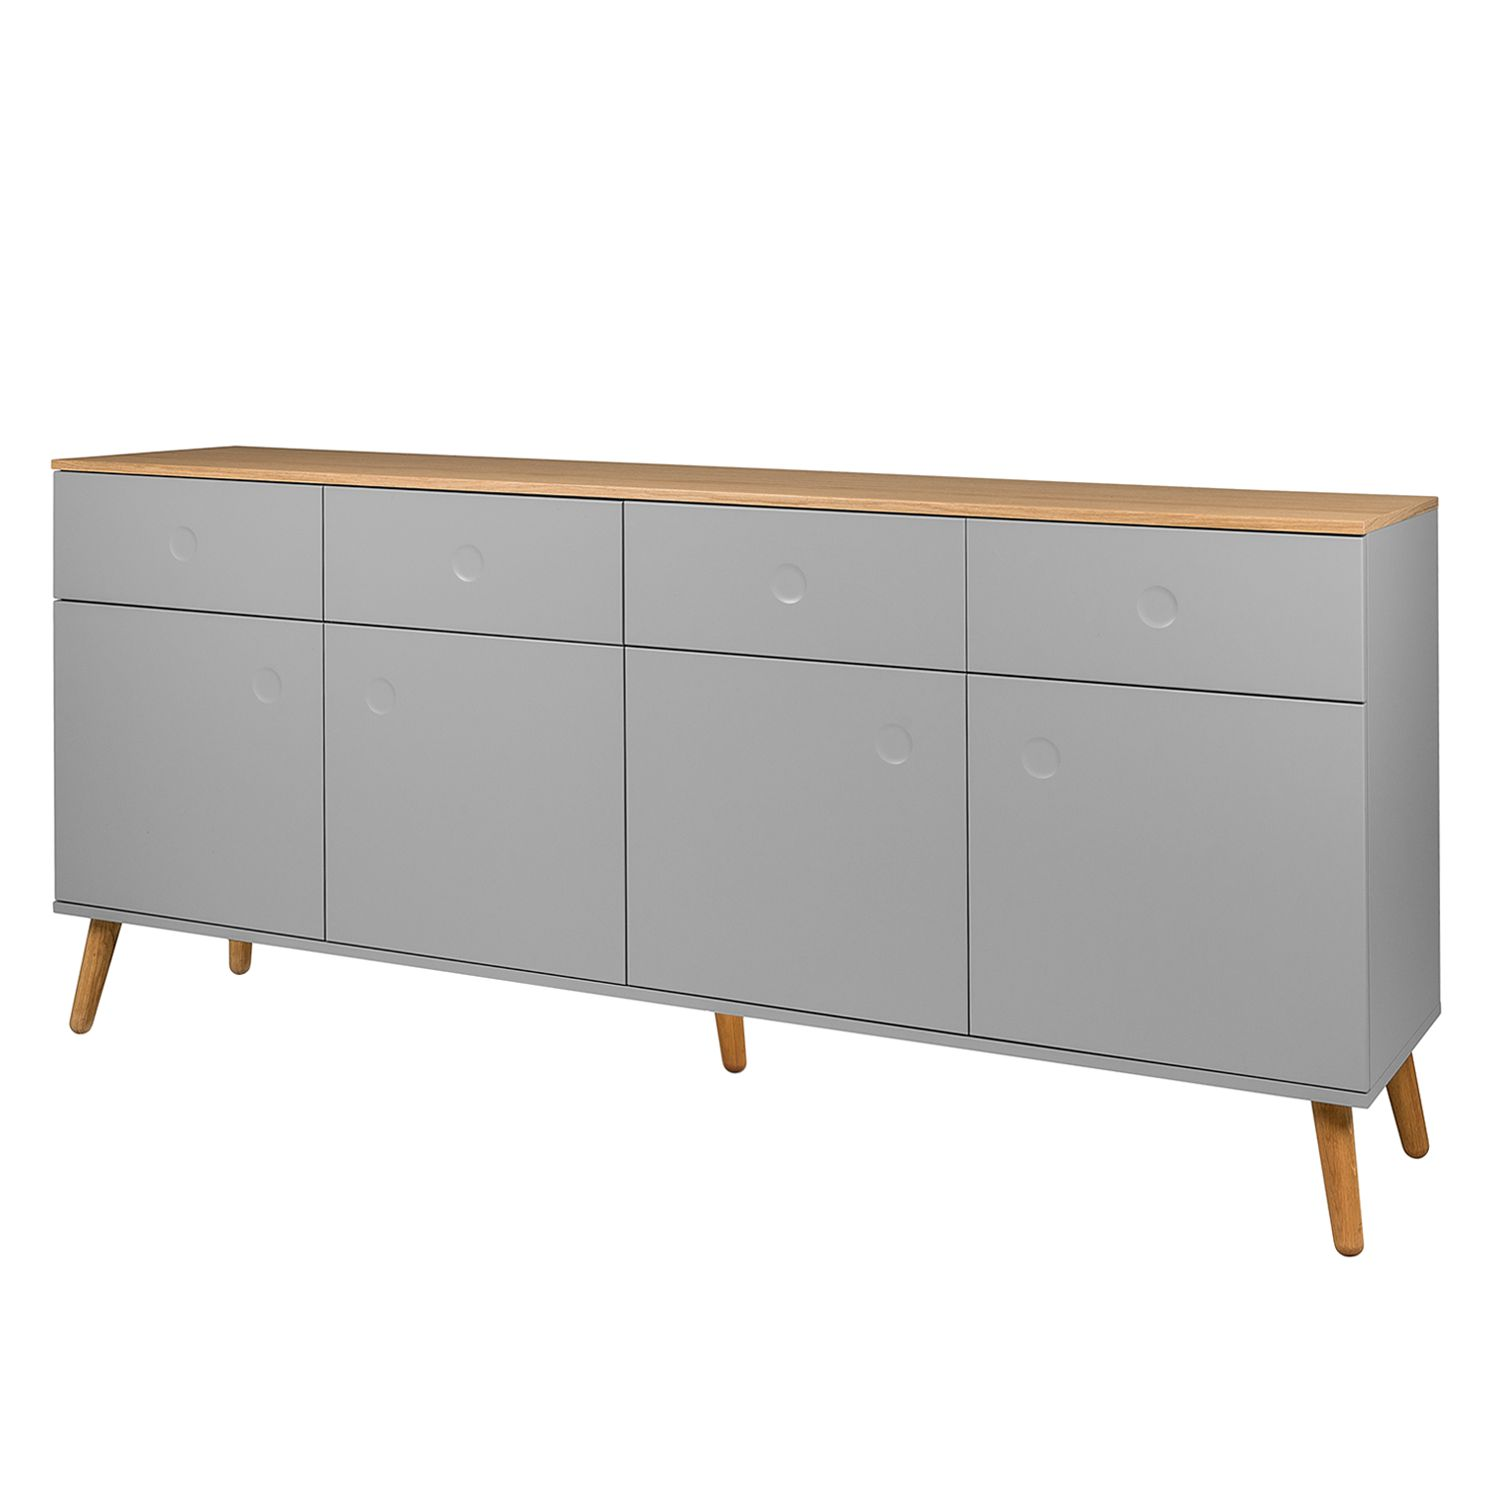 sideboard massivholz preisvergleiche erfahrungsberichte. Black Bedroom Furniture Sets. Home Design Ideas